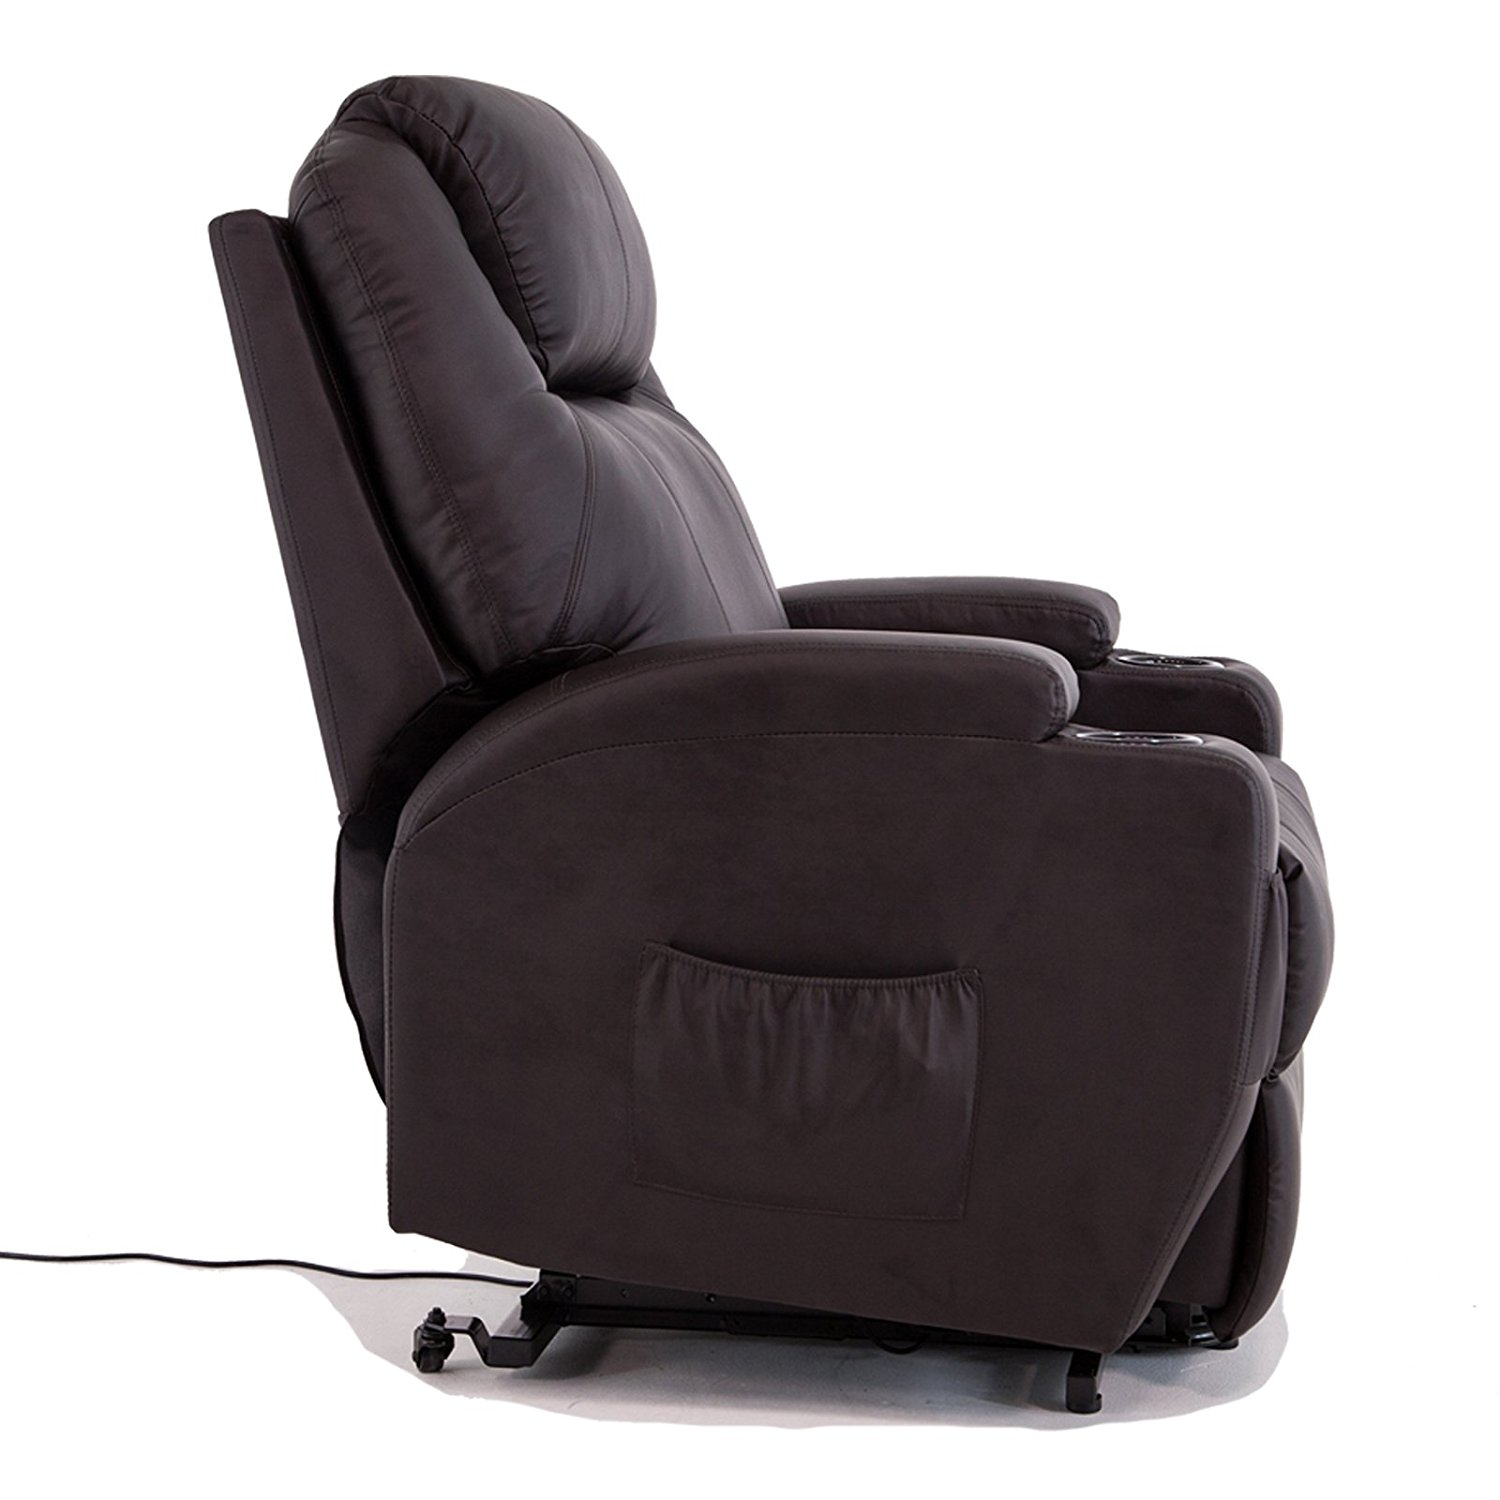 Wall Hugger Lift Chair Uenjoy Power Lift Chair Recliner Armchair Real Leather Wall Hugger Lounge Seat Brown